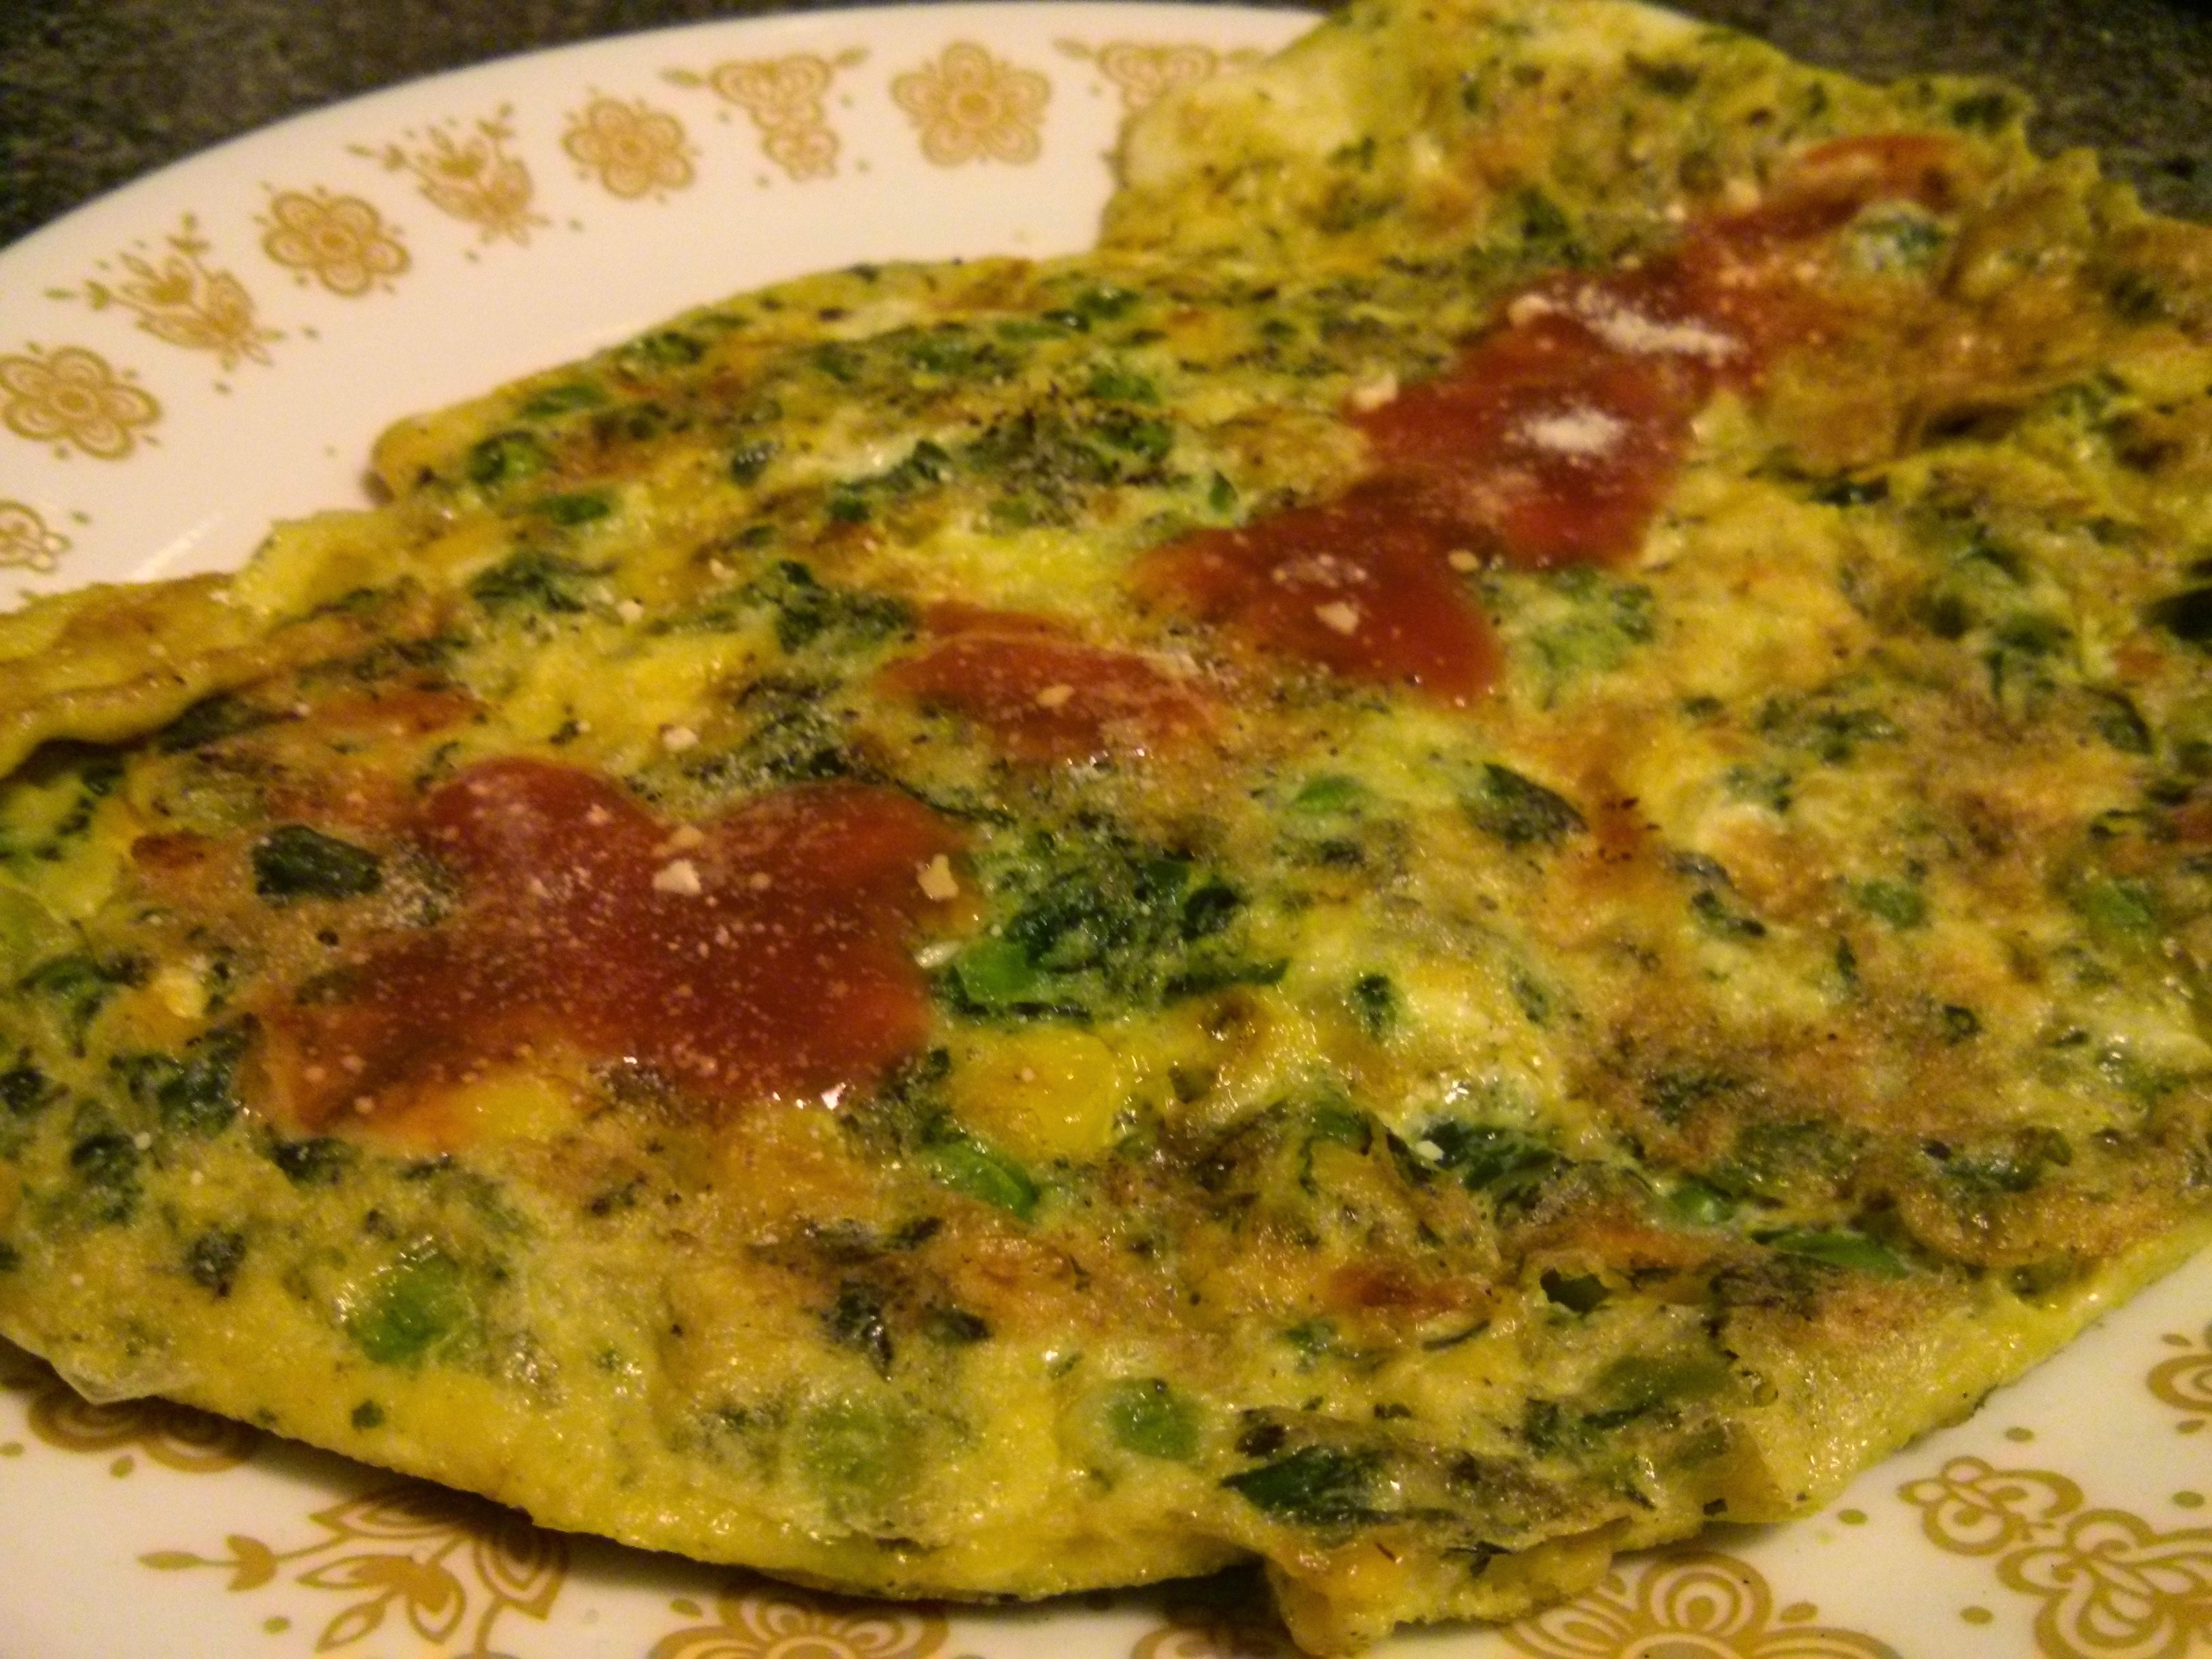 Sunday Stovetop Frittata by John LeMasney via lemasney.com